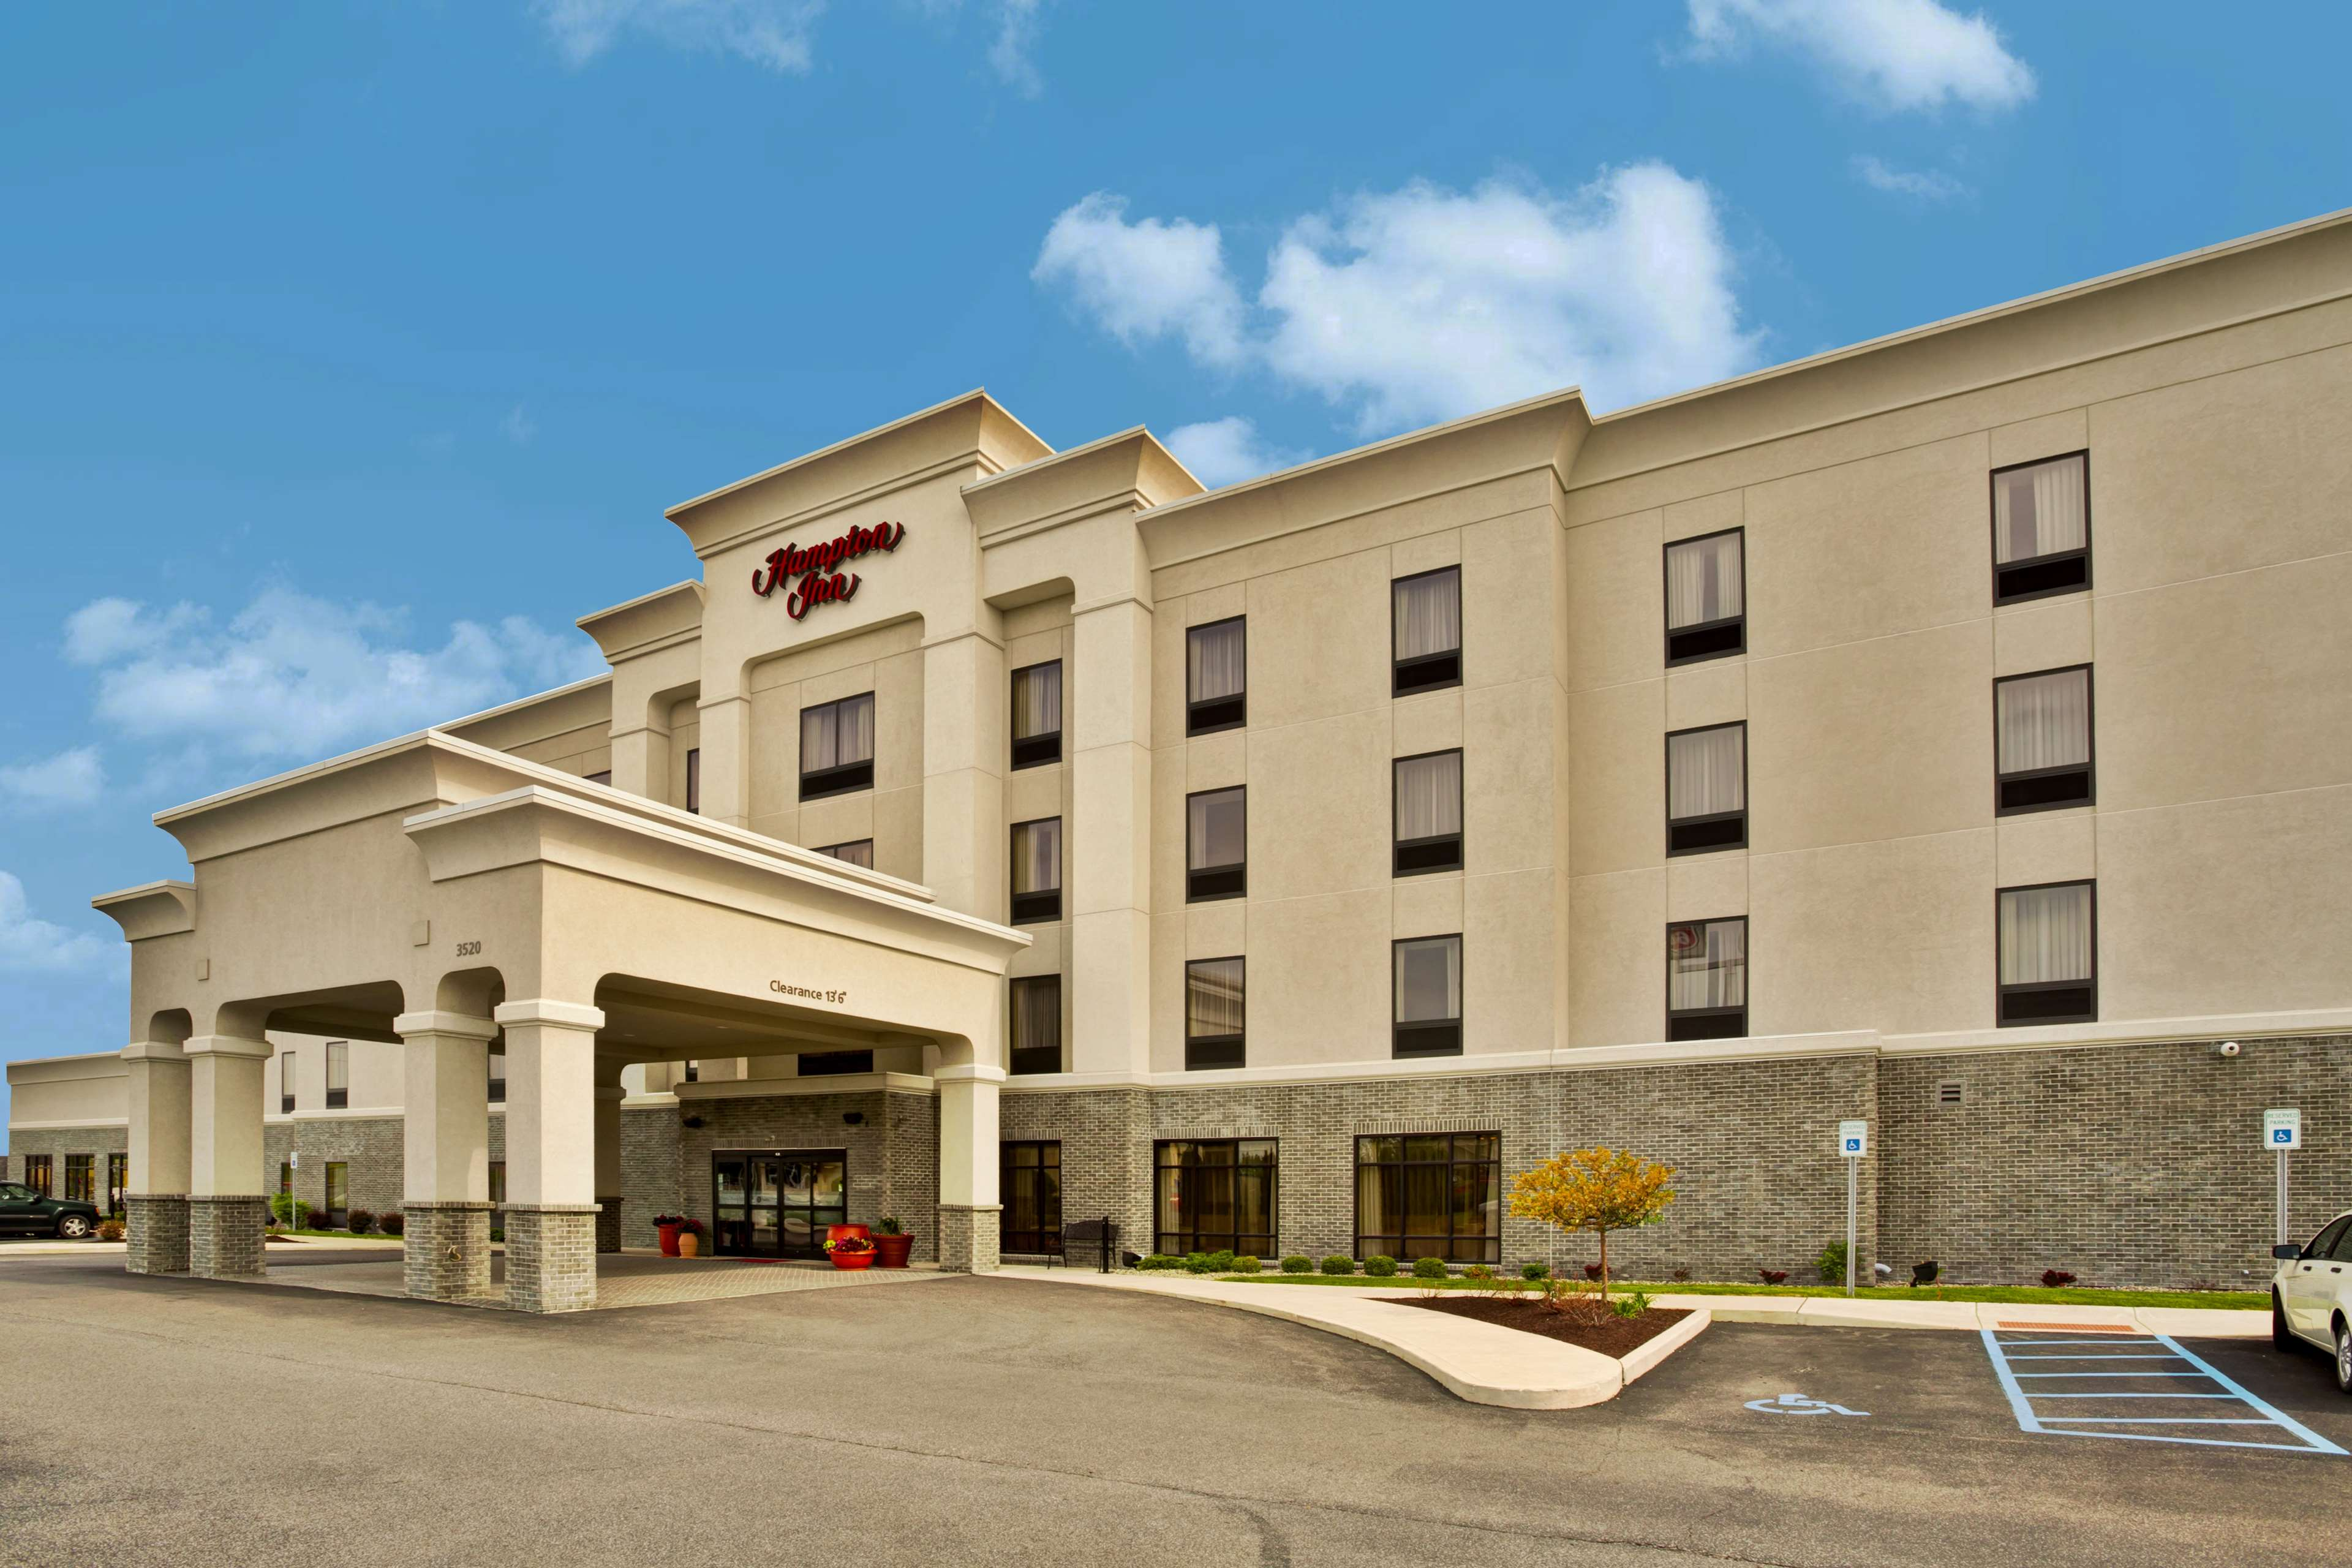 Hampton Inn Ft. Wayne/Dupont Road image 0